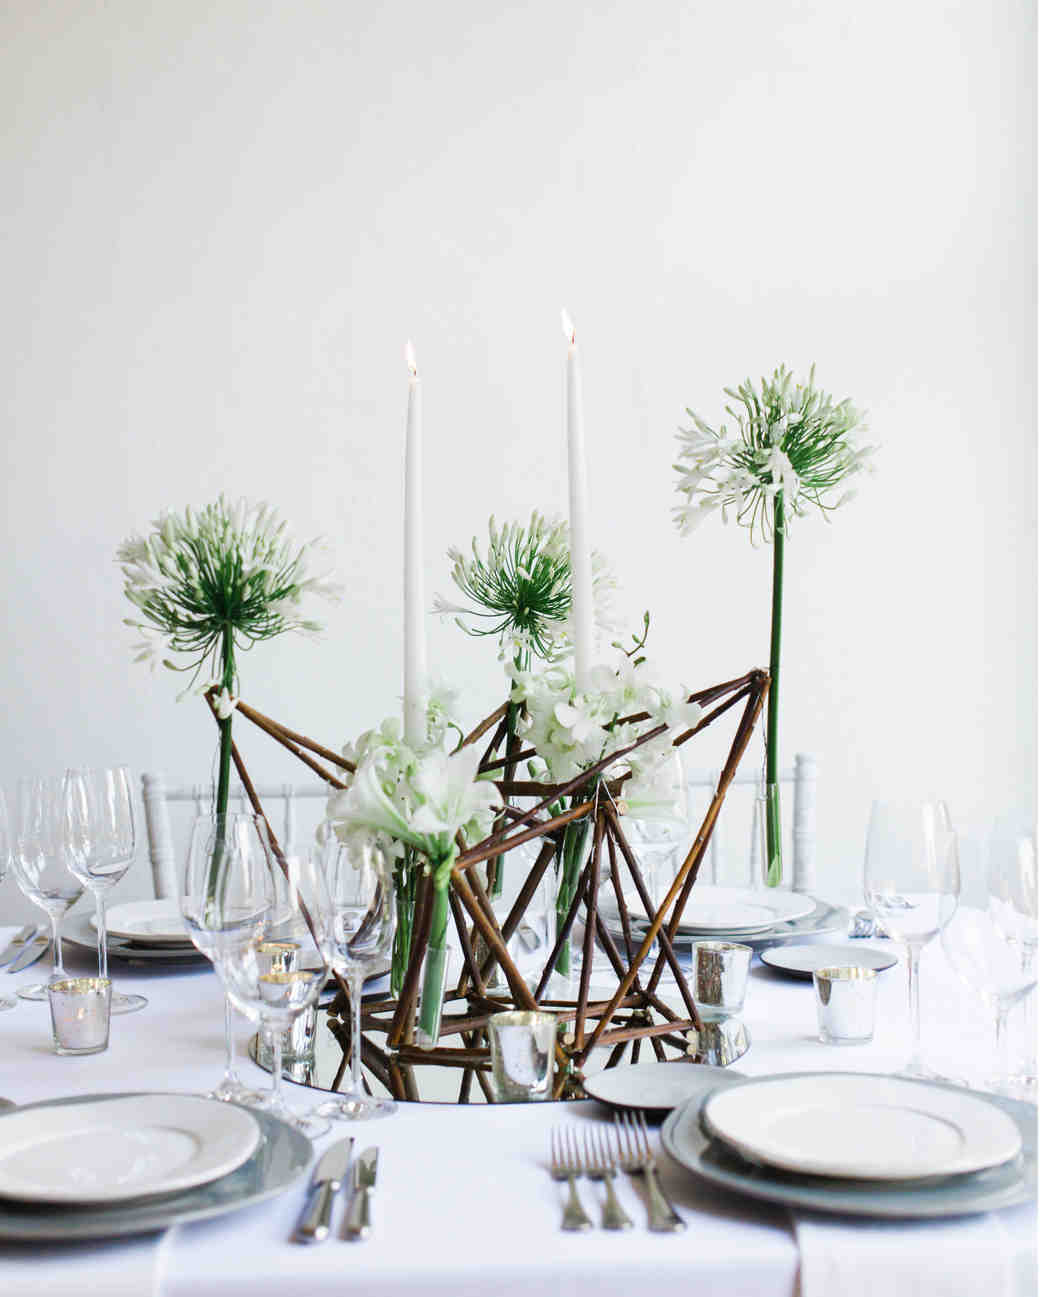 Get inspired by these chic wedding table settings, designed for a diverse range of styles, tastes, and needs.